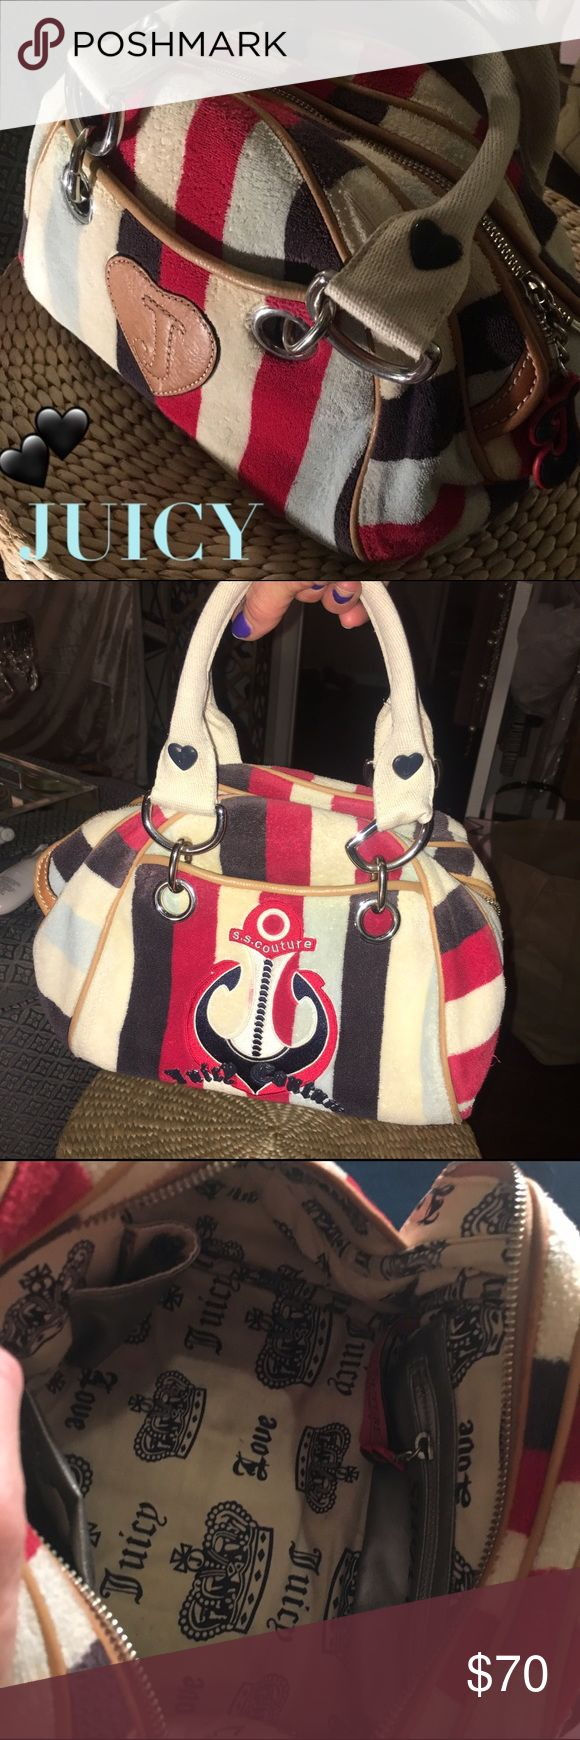 🛳JUICY Couture NAUTICAL Bag⚓️ 🛳⚓️JUICY nautical terry cloth outside • logo print inside with leather accessory pockets • metal zipper with leather trim and side bottom panels • excellent condition • used only once. ⚓️super JUICY cute⚓️🛳🛳🛳🛳 Juicy Couture Bags Totes